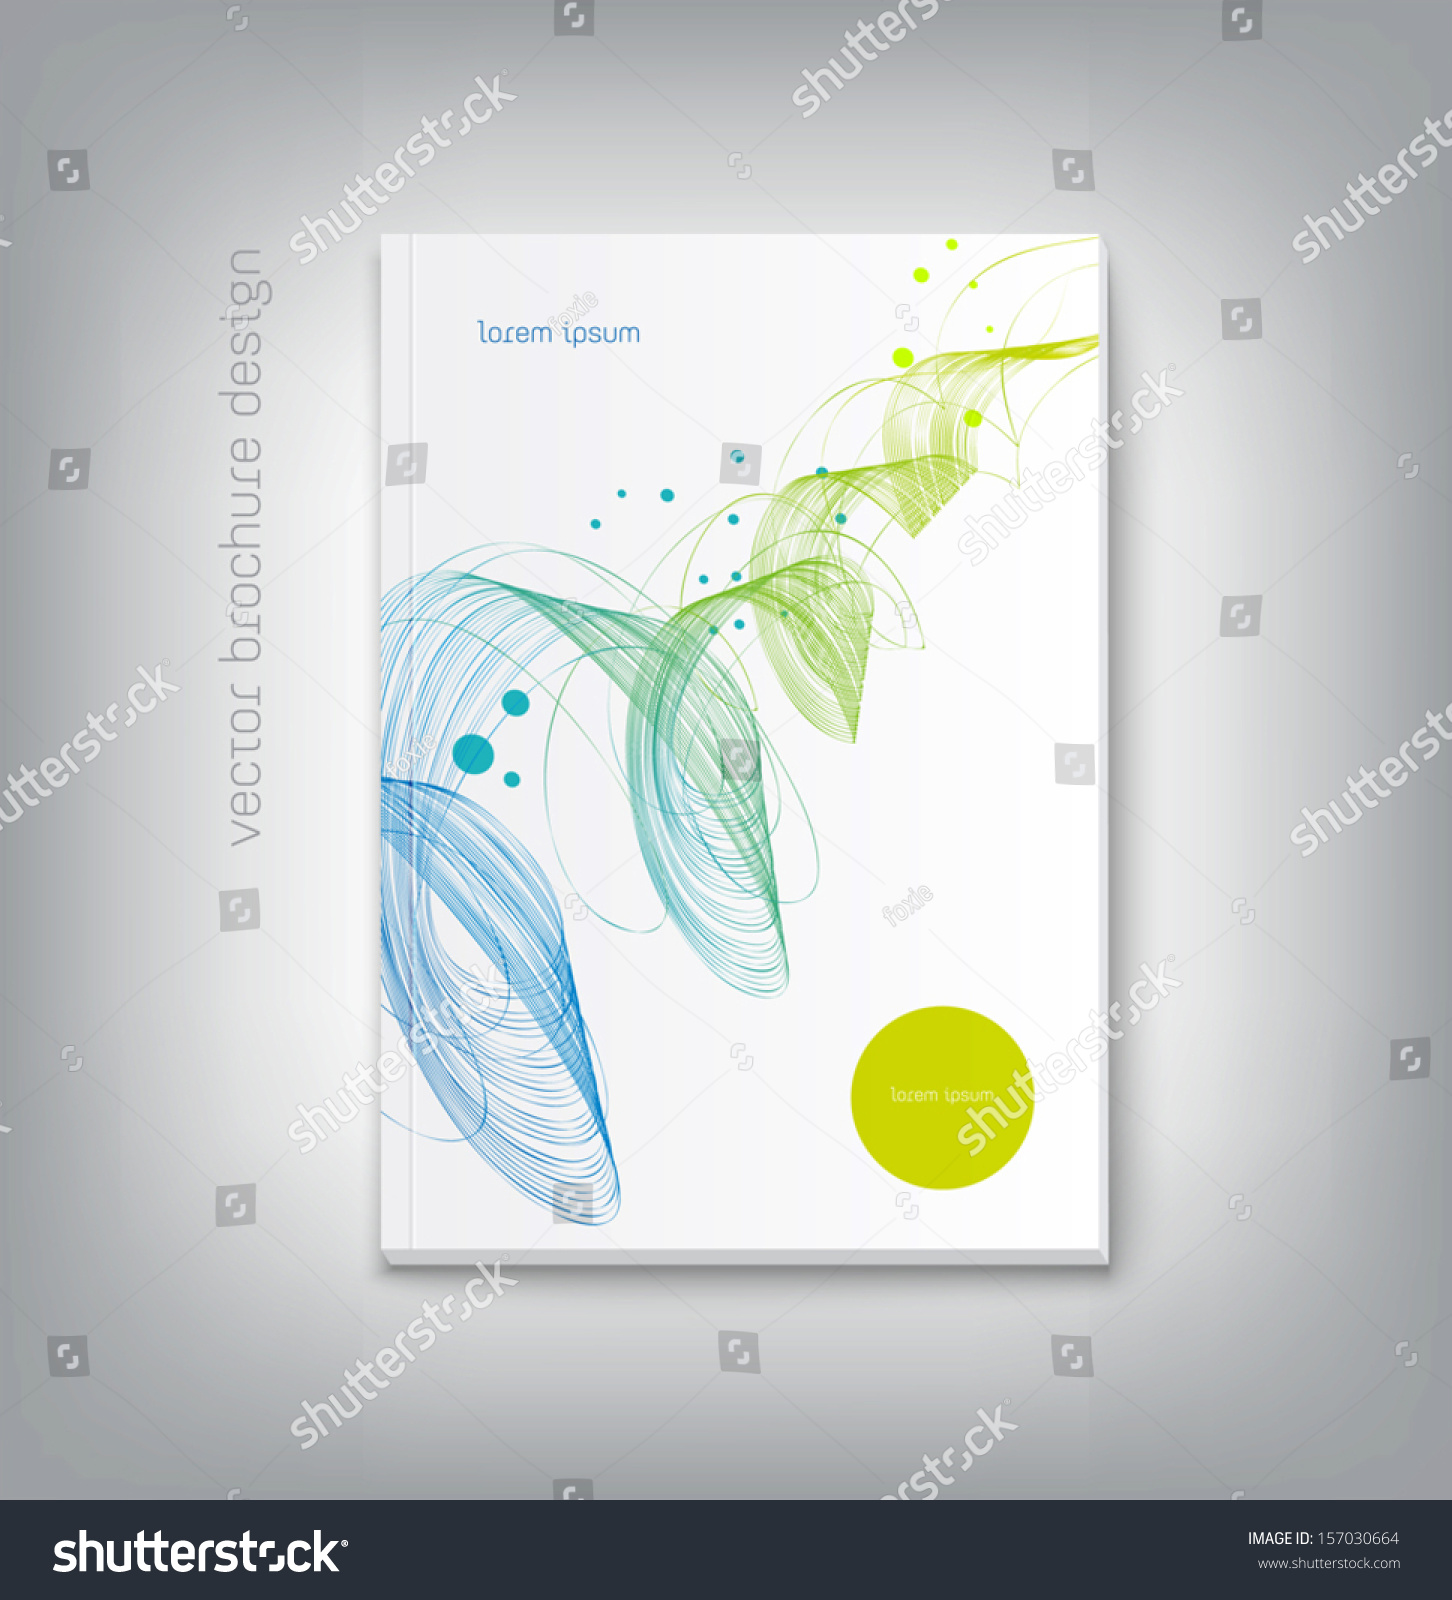 vector brochure cover design template abstract stock vector vector brochure cover design template abstract dynamic wave background